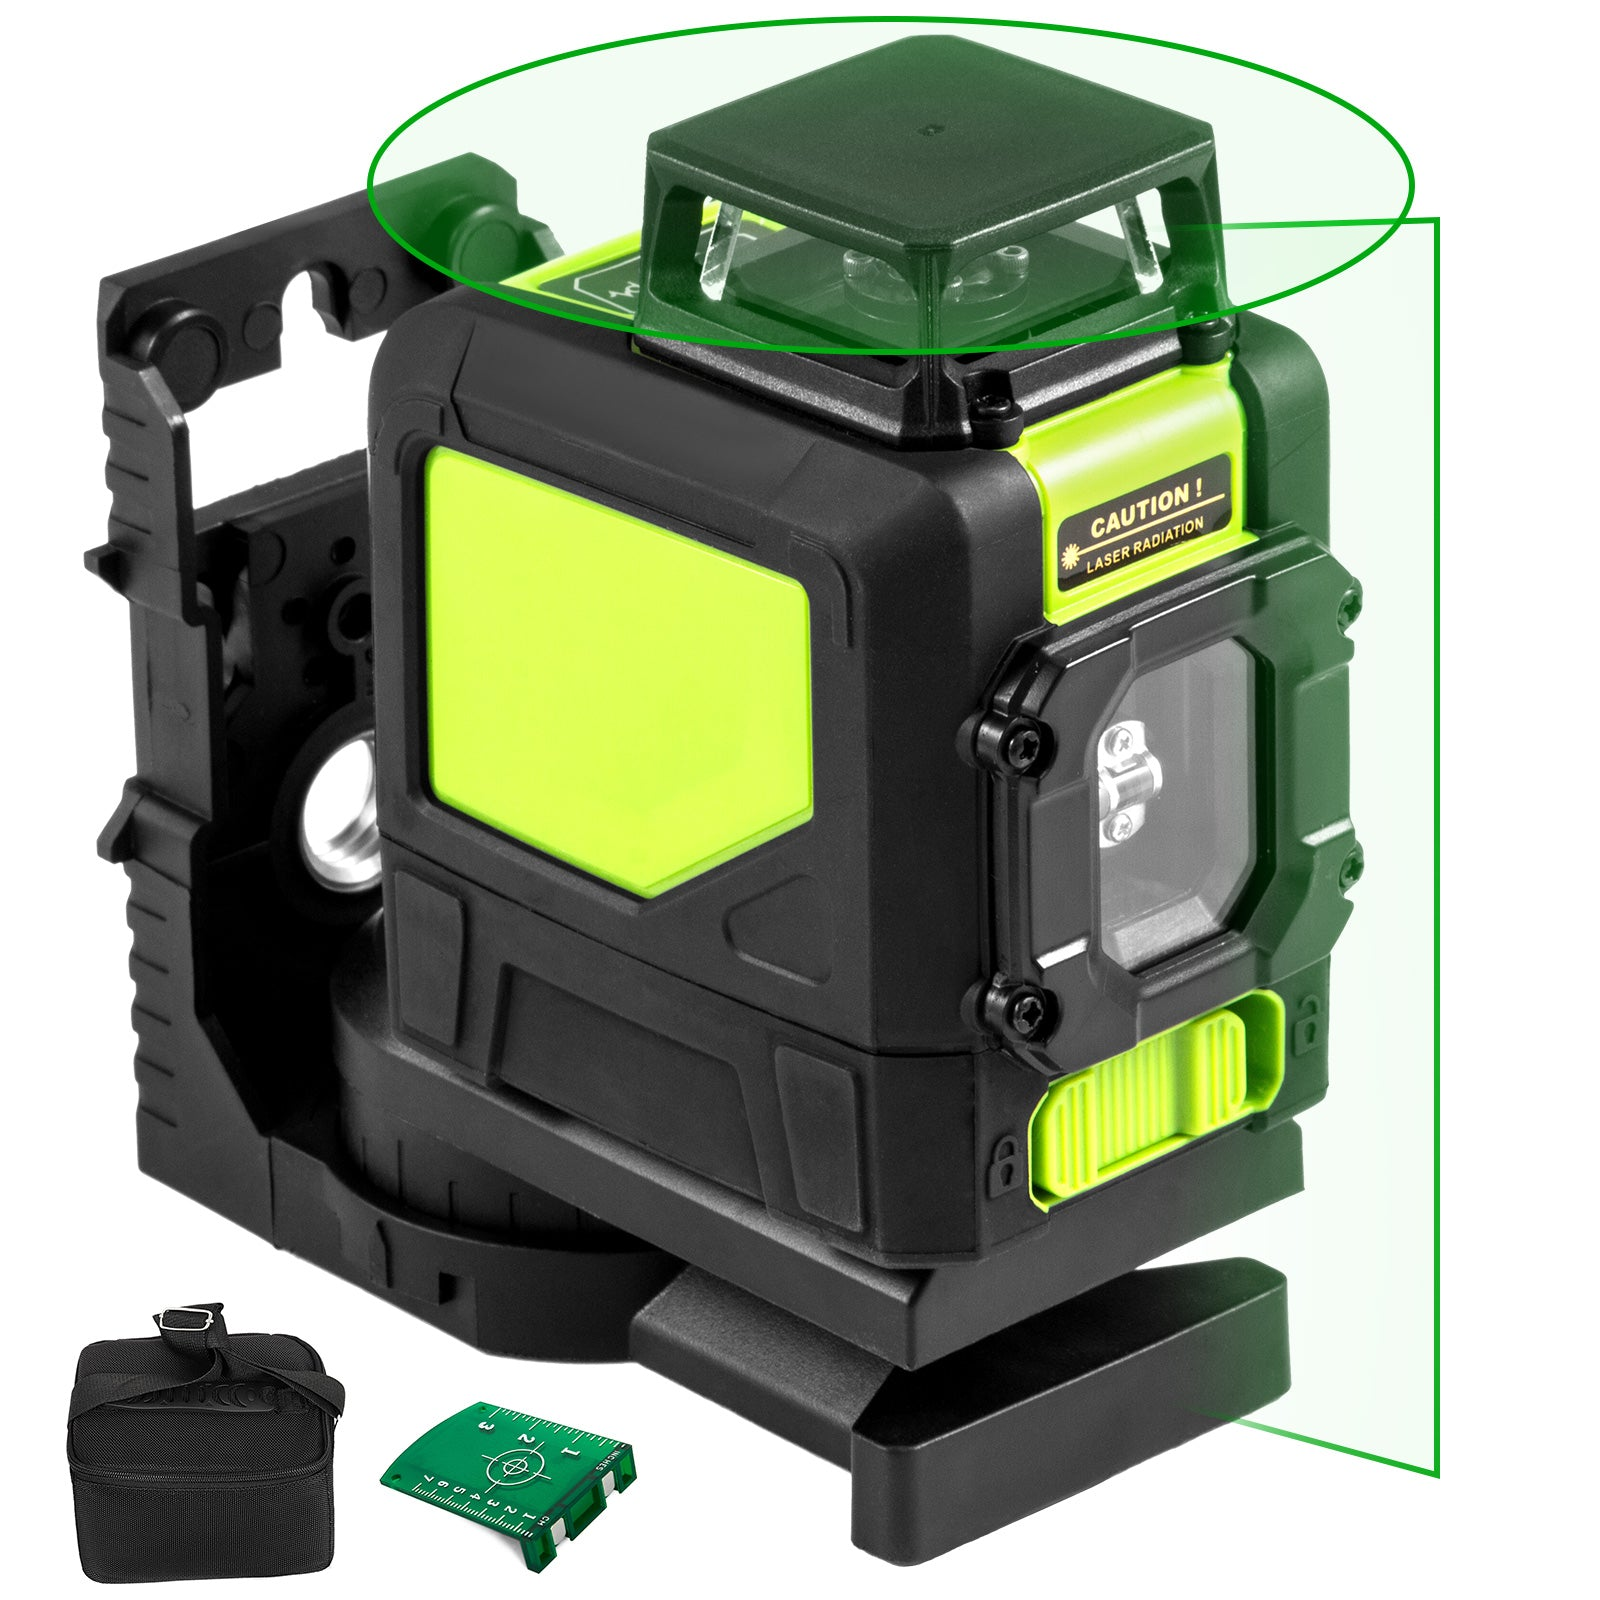 Laser Level Green Beam Cross 5 Line Self-leveling 360-degree Line Pluse Mode